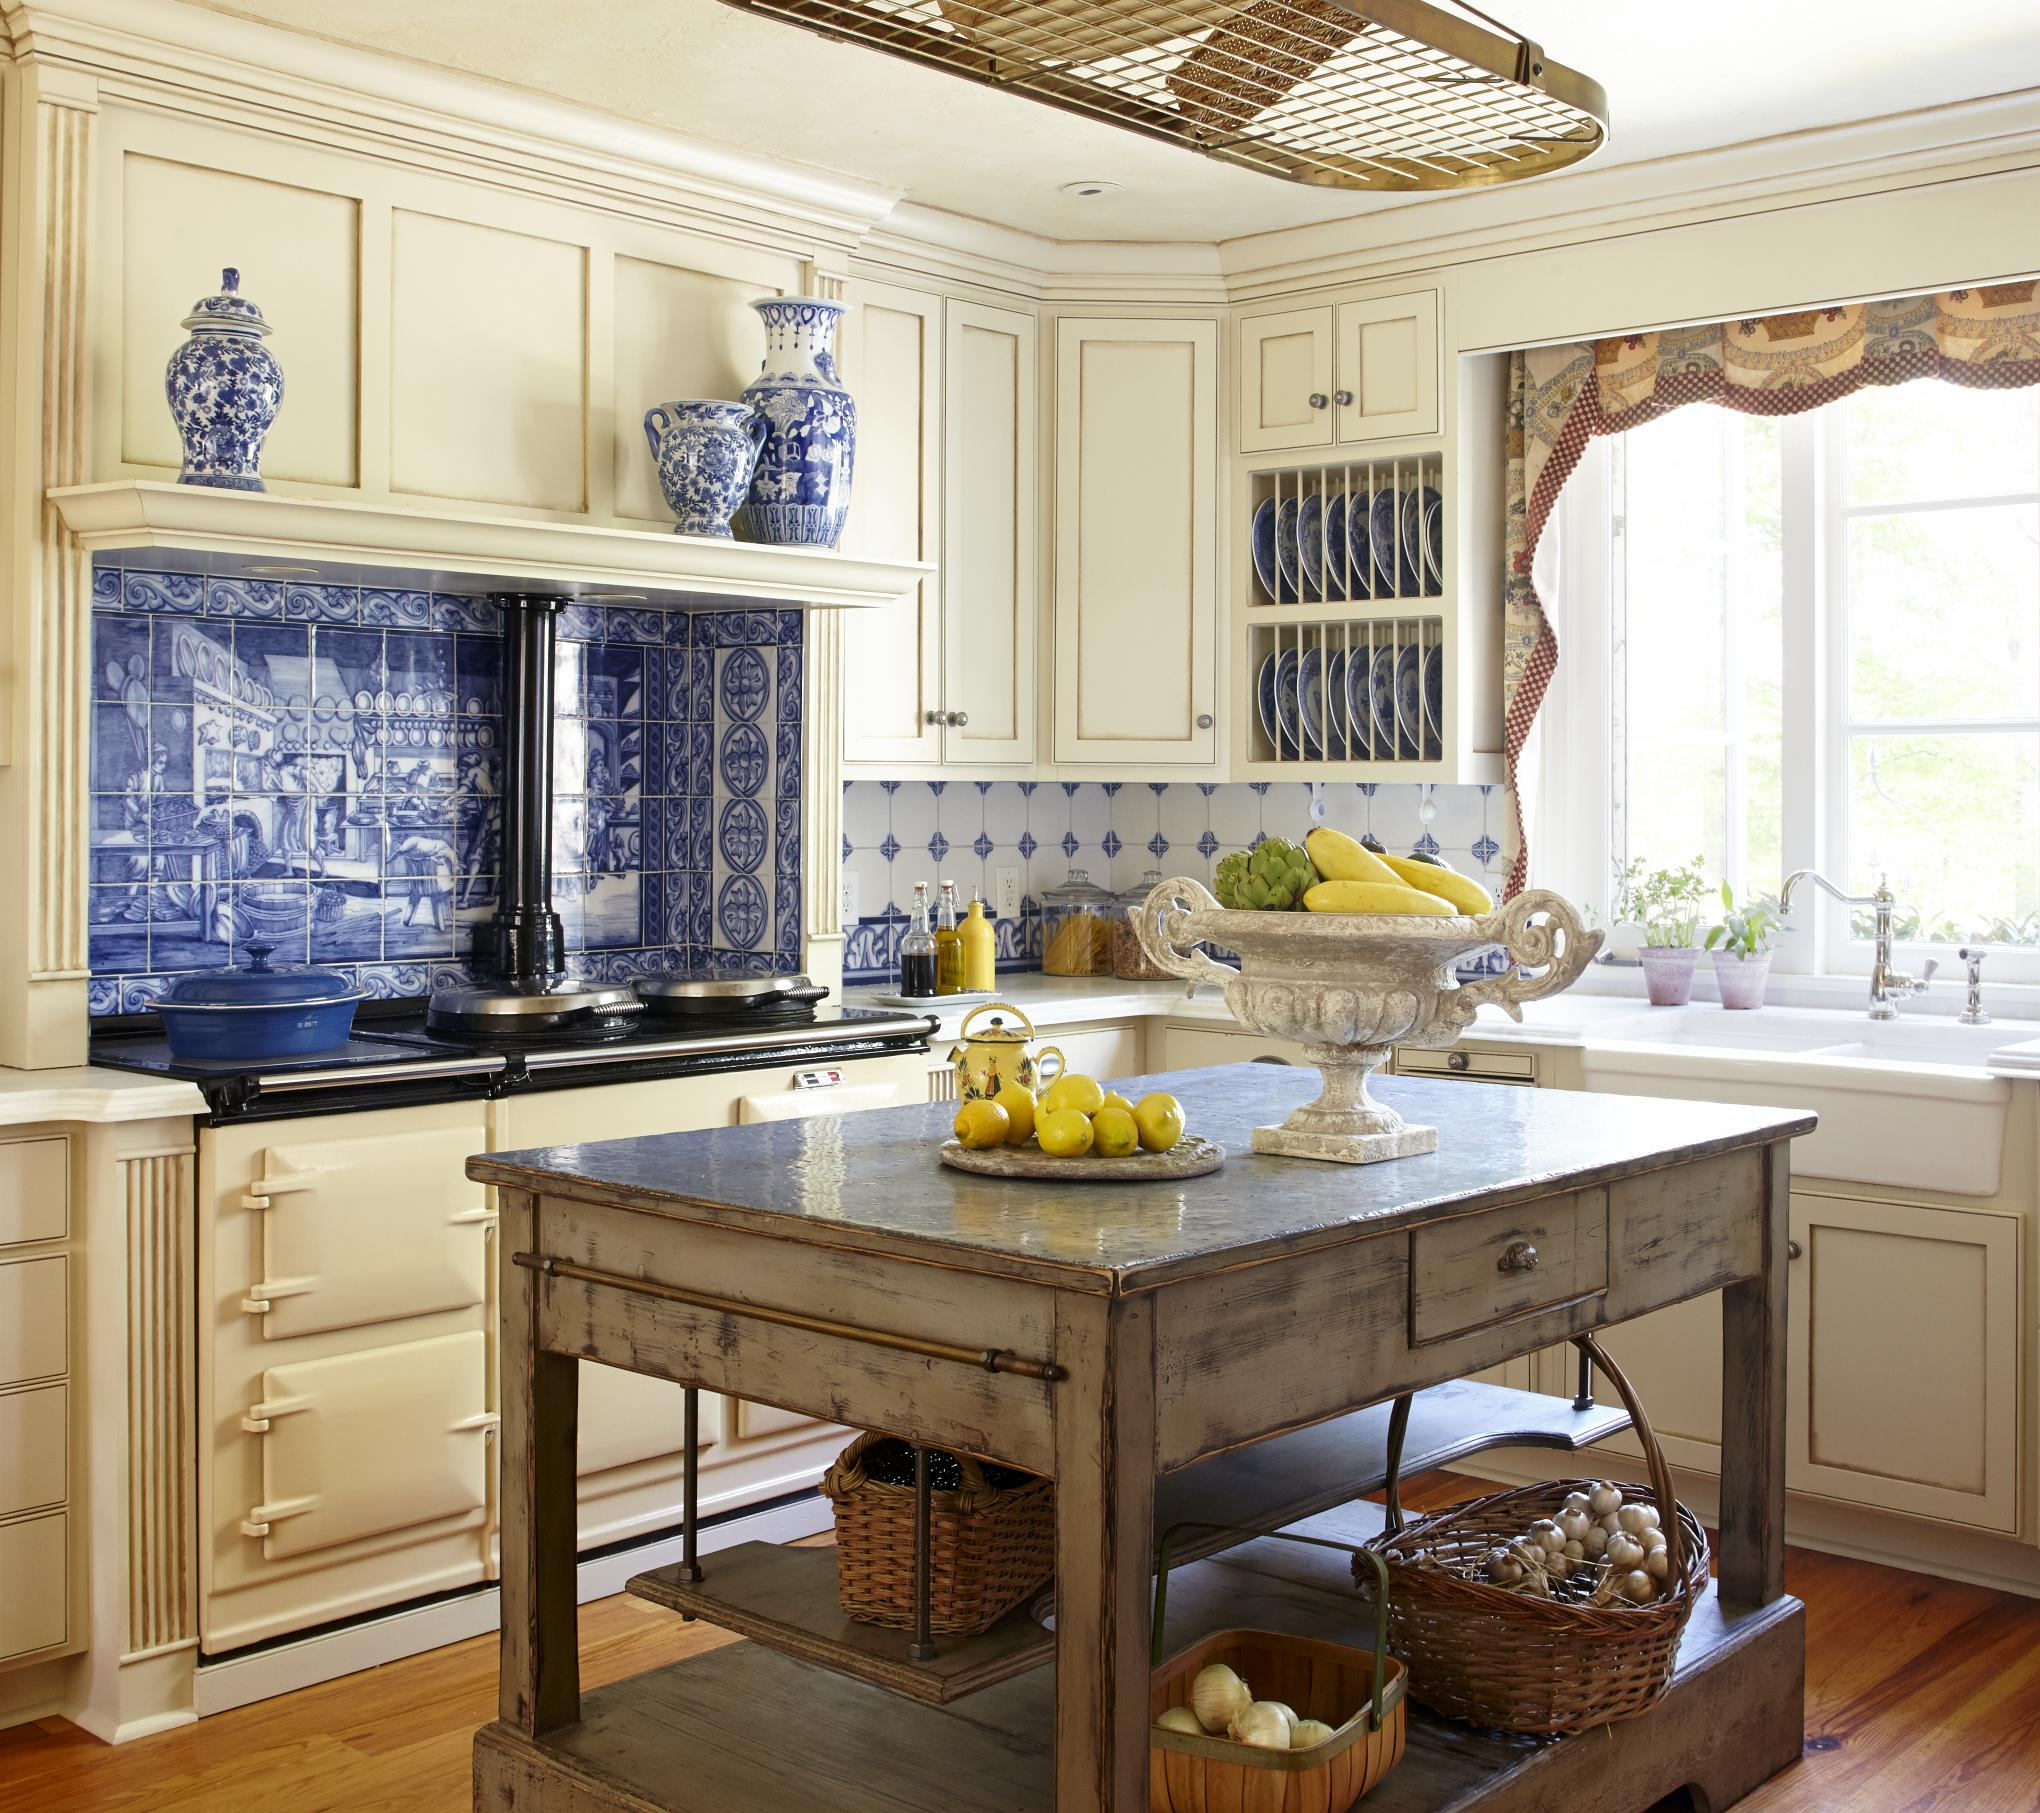 Kitchen Cabinets French Country Style: Country French Kitchens